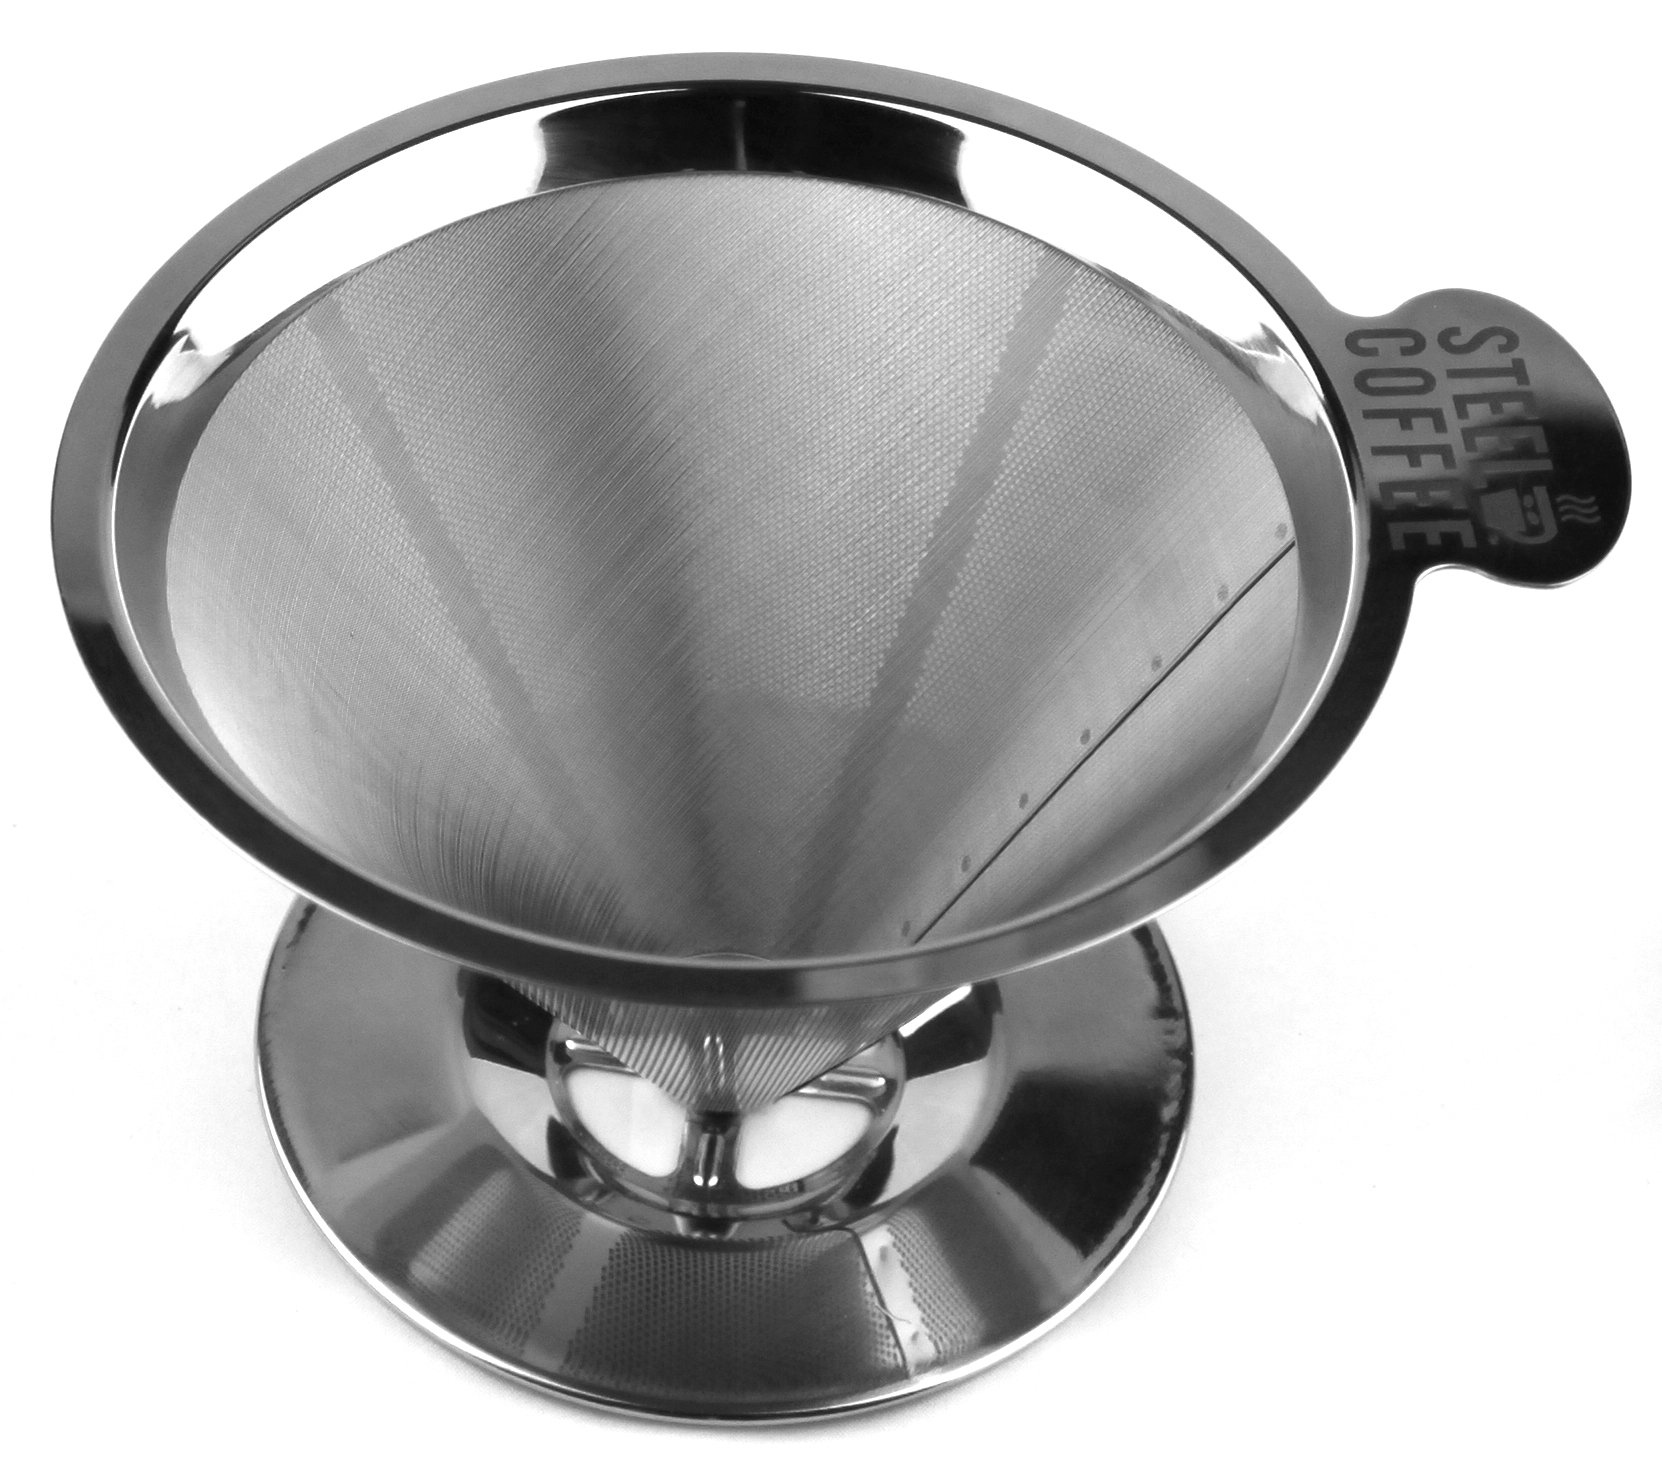 Steel Coffee Reusable Pour Over Coffee Dripper Stainless Steel Filter Coffee Maker Paperless Drip Filter with Handle & Stand for Fresh Brew Dishwasher �